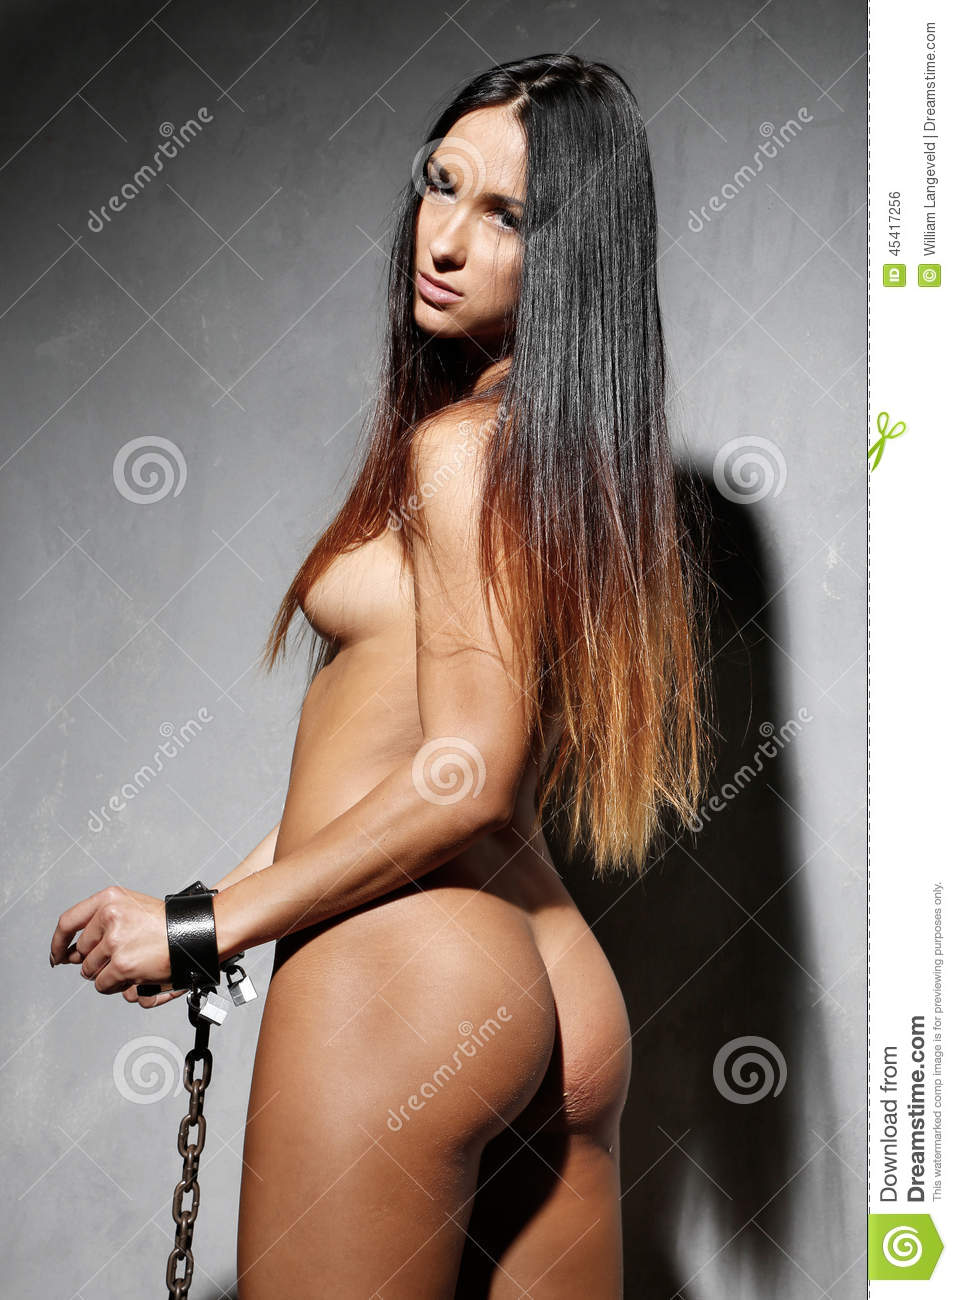 Beautiful naked women bondage something